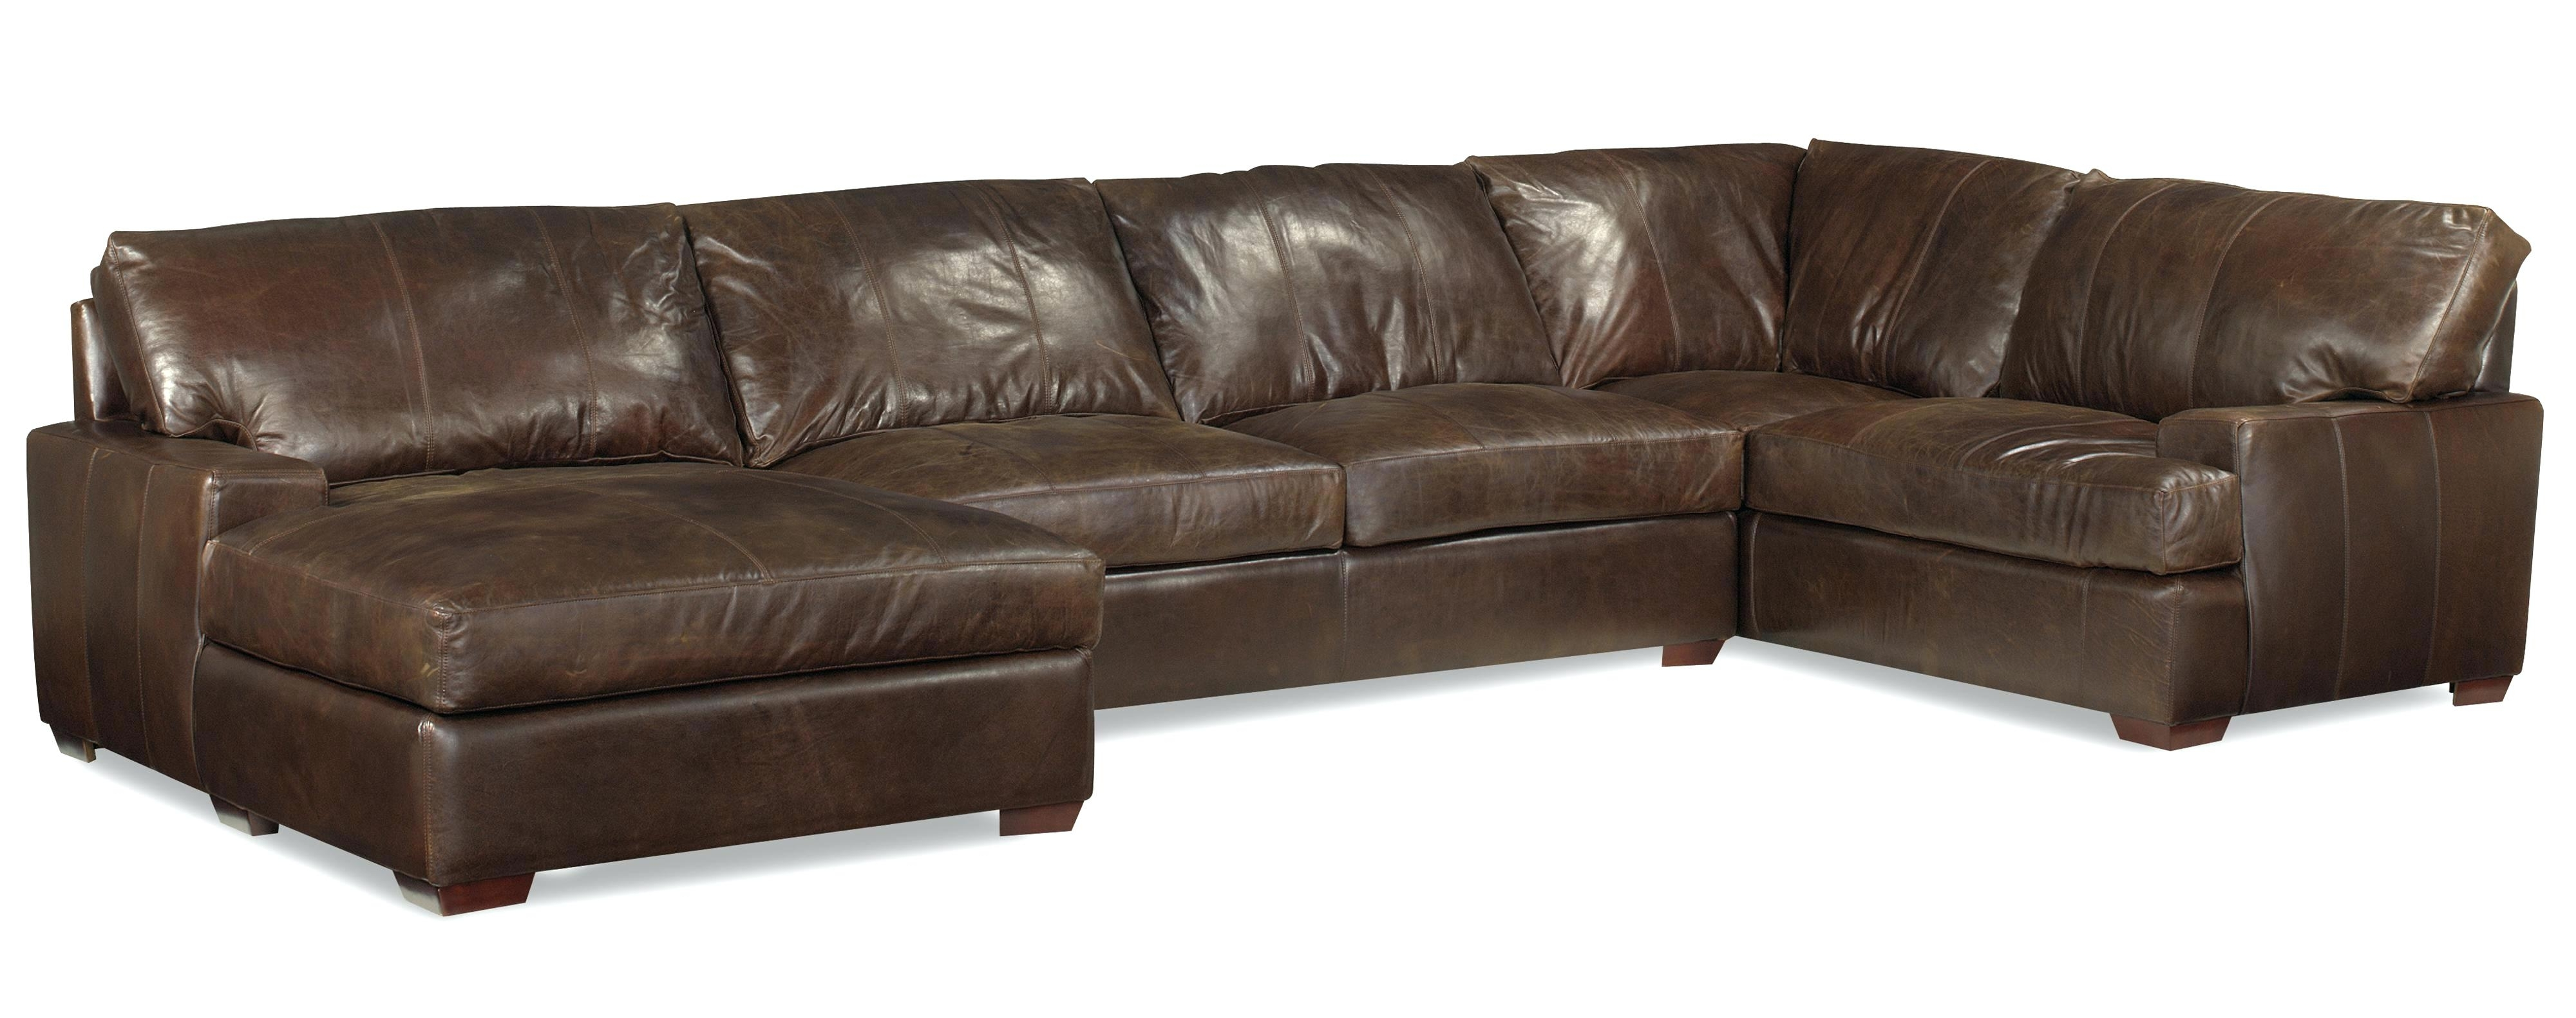 2018 Leather Sofa Chaise (View 6 of 15)